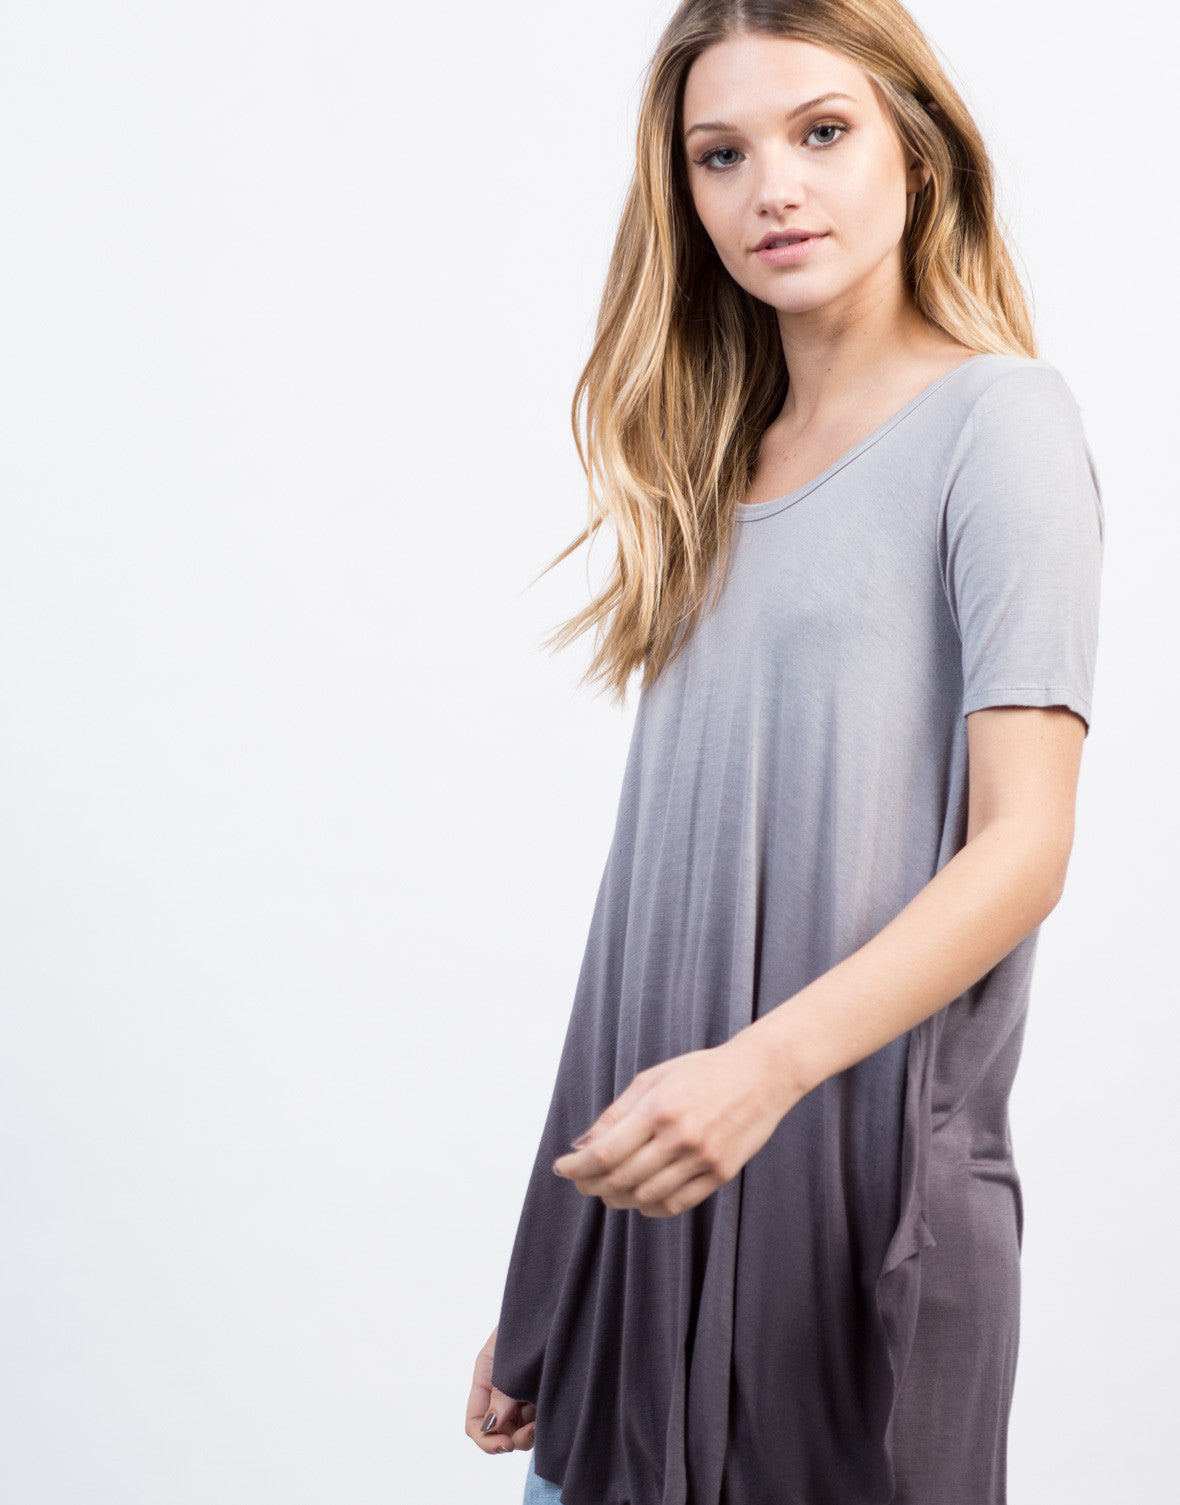 Detail of Flowy Ombre Tunic Top